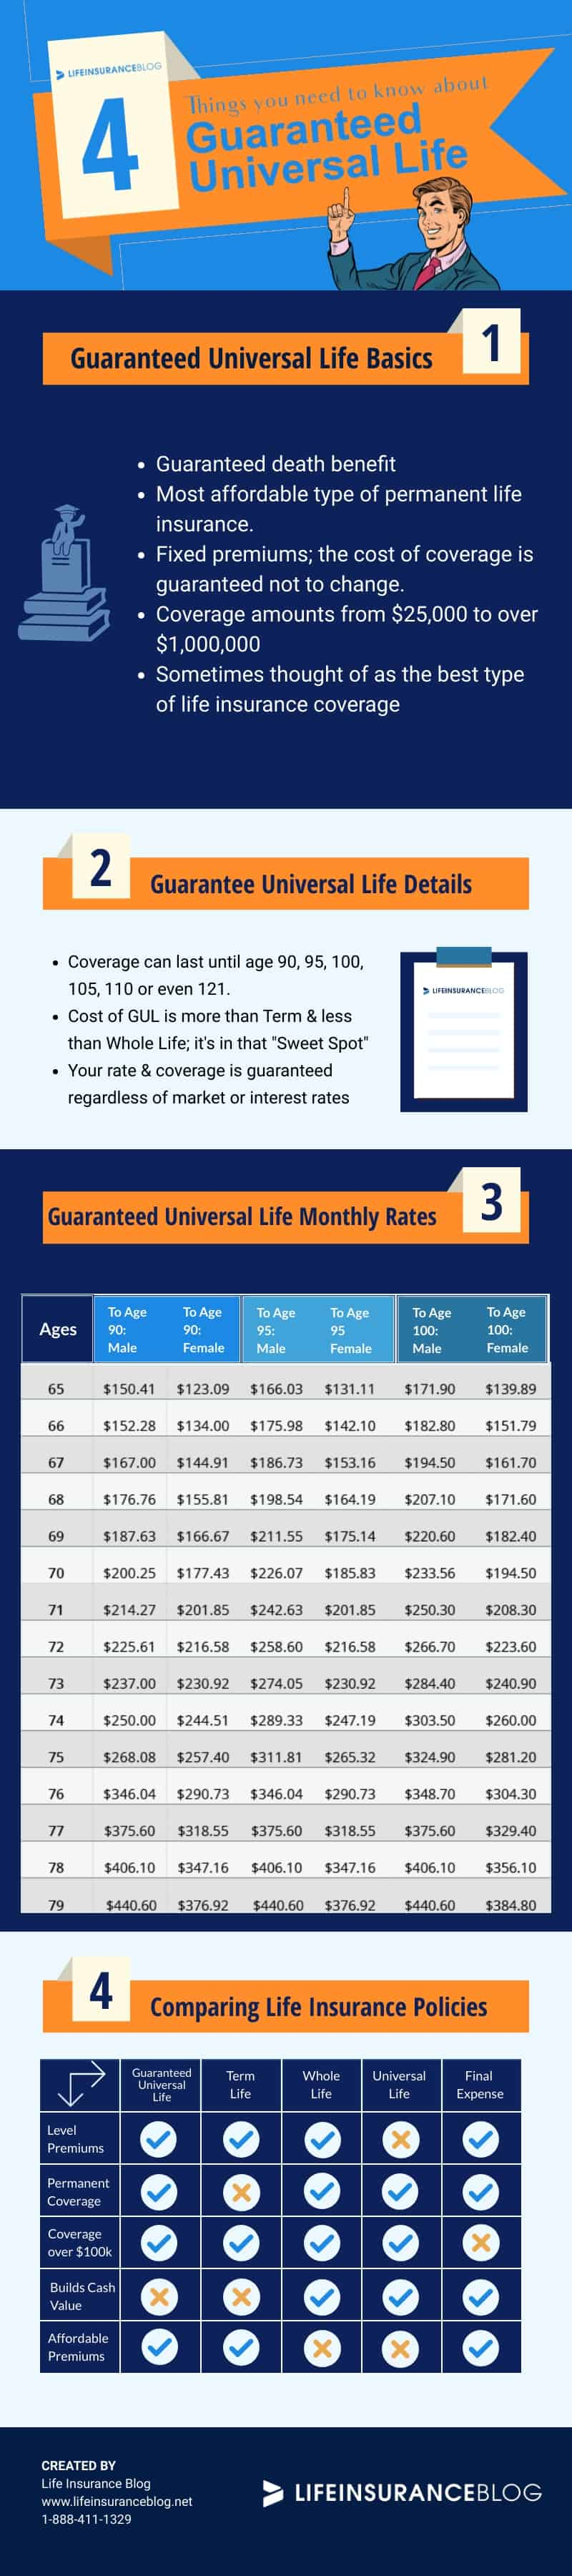 guaranteed universal life insurance infographic